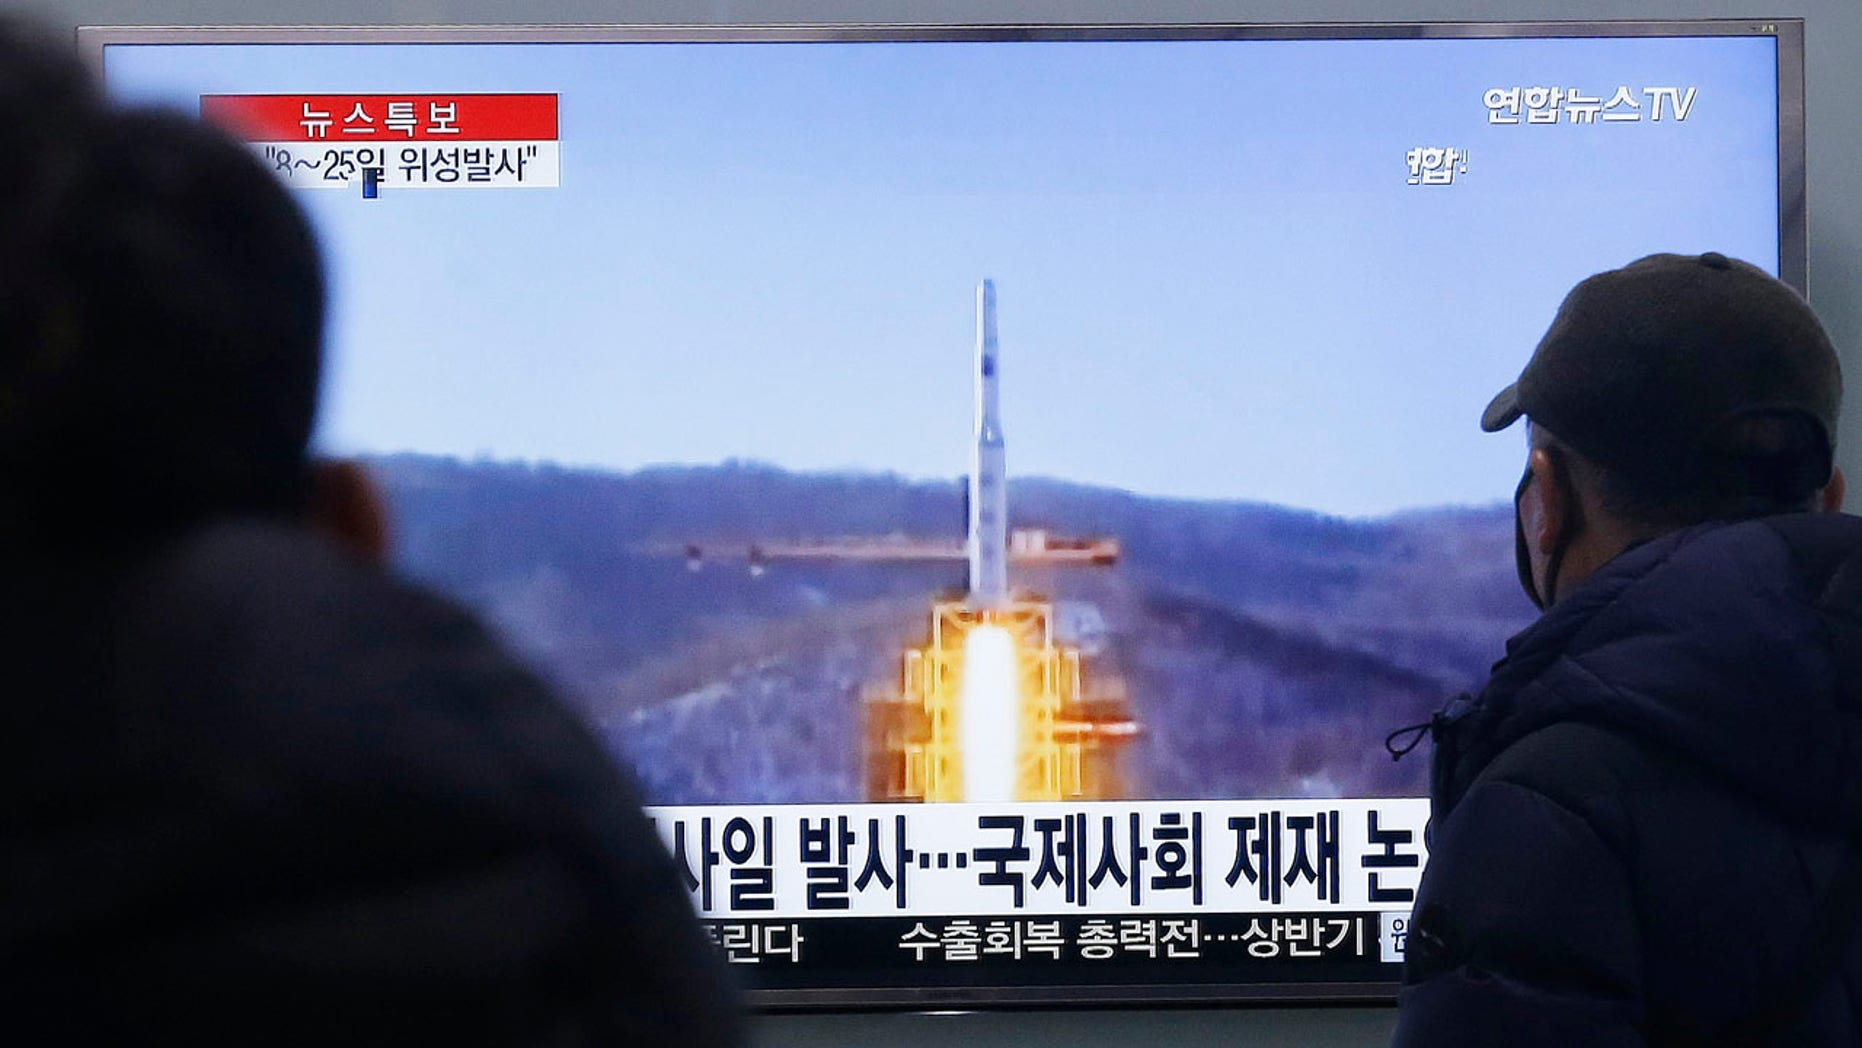 Feb. 3, 2016: South Koreans watch a TV news program with a file footage about North Korea's rocket launch plans at Seoul Railway Station. (AP Photo/Ahn Young-joon)